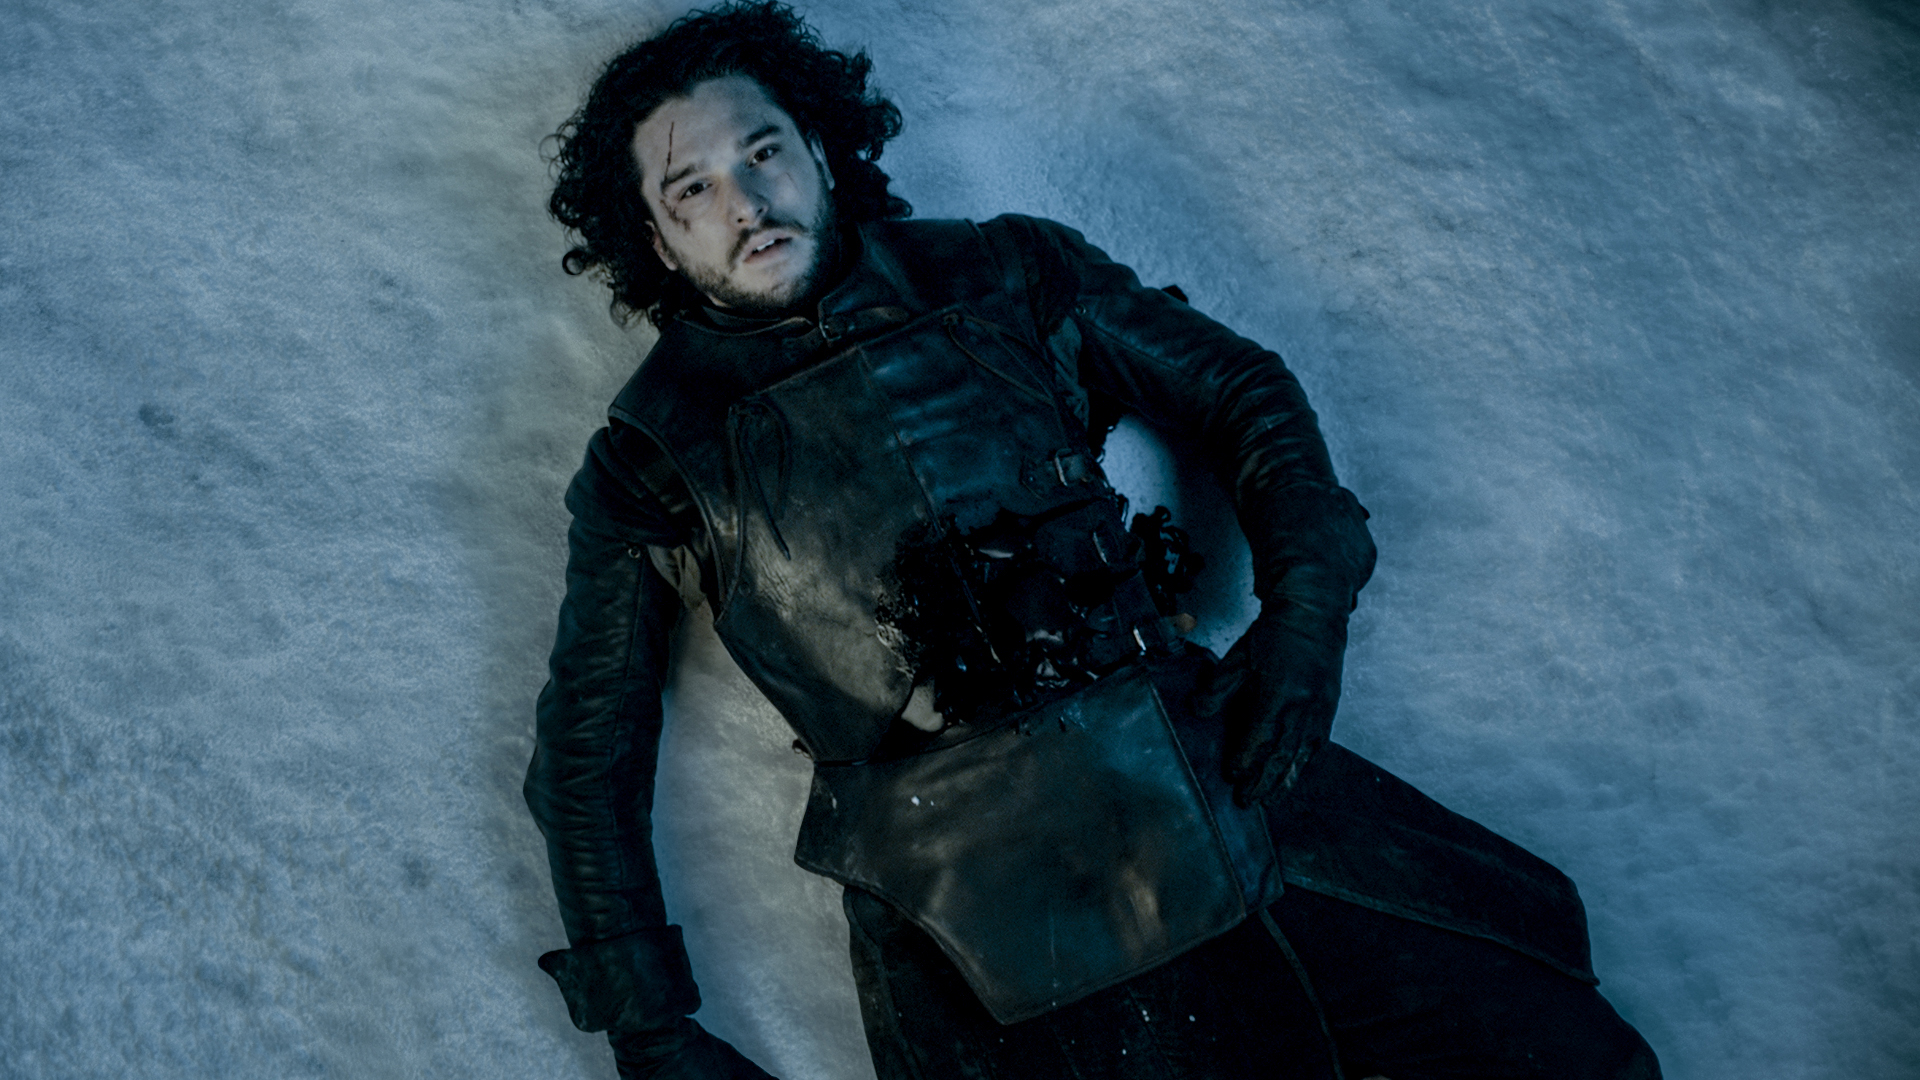 Obama mourns Jon Snow's death in Game of Thrones Season 5 finale